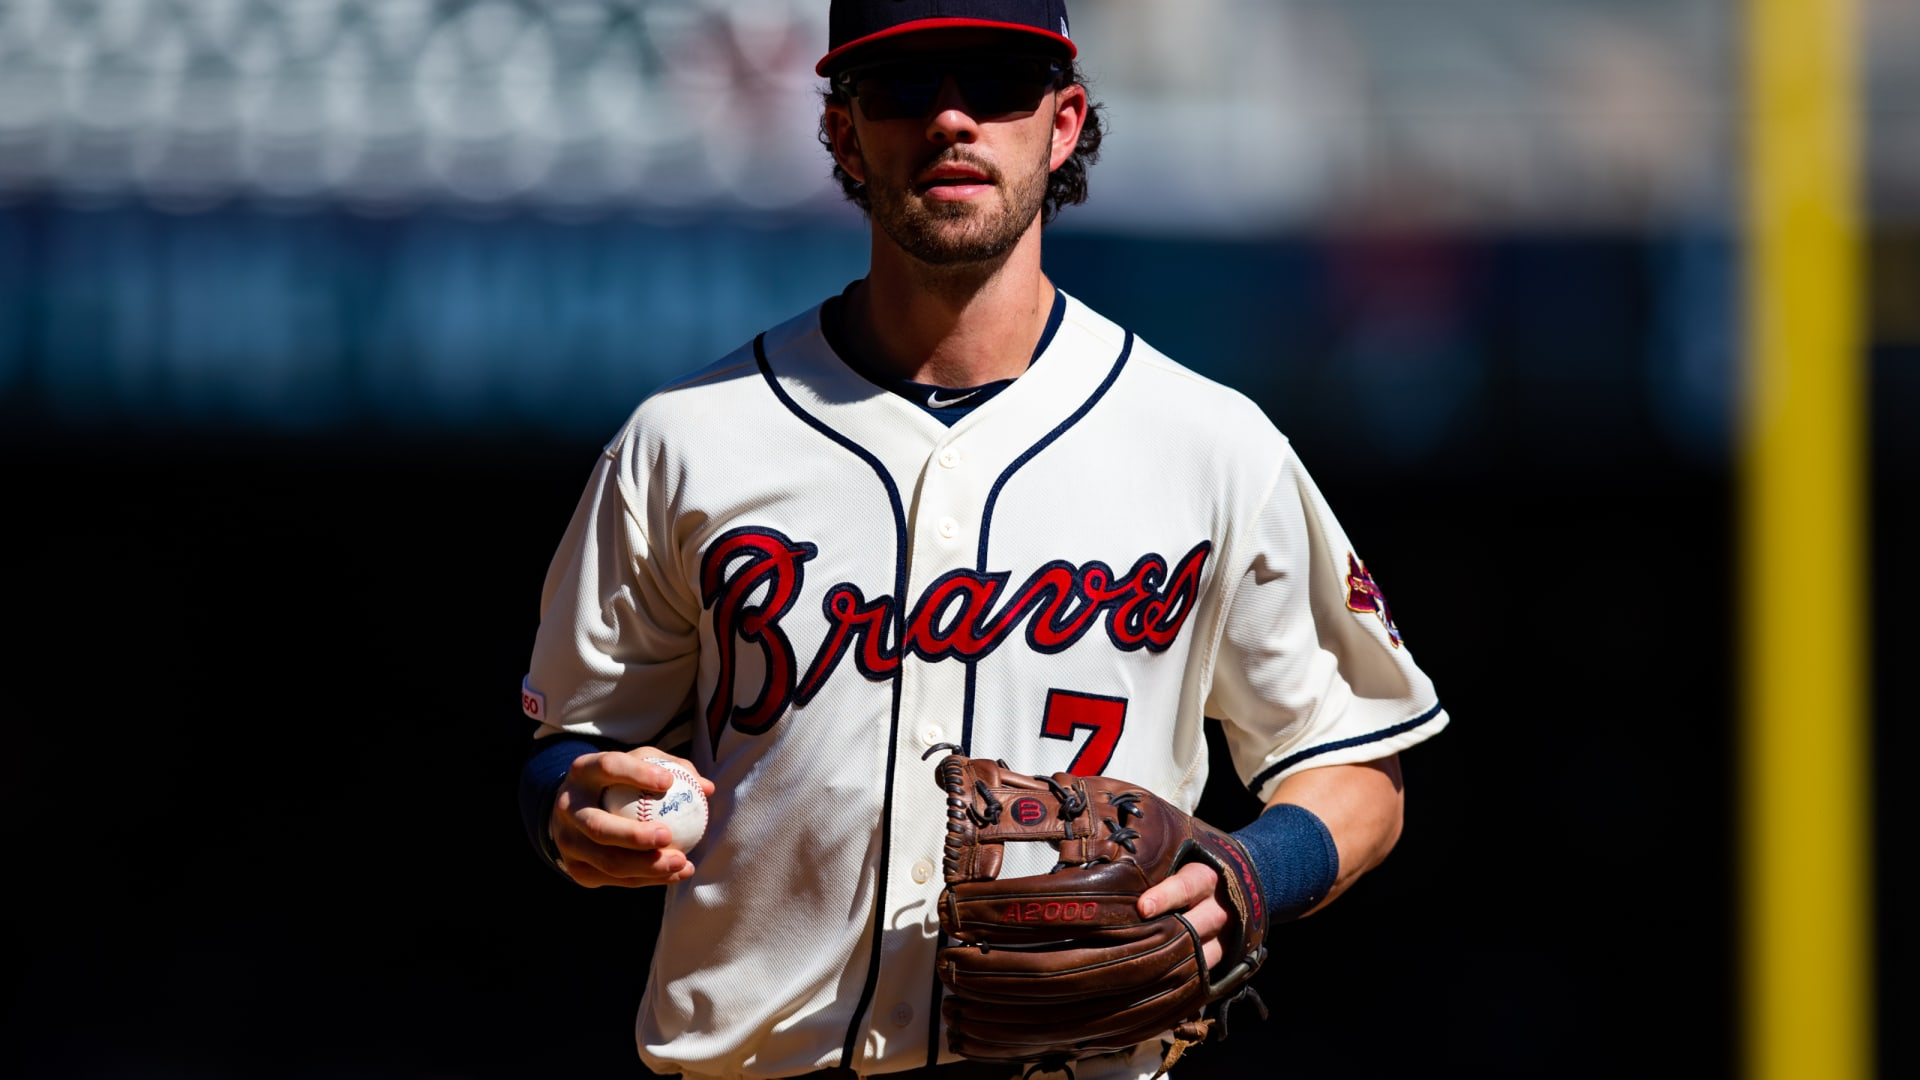 These Atlanta Braves players could be traded during the season